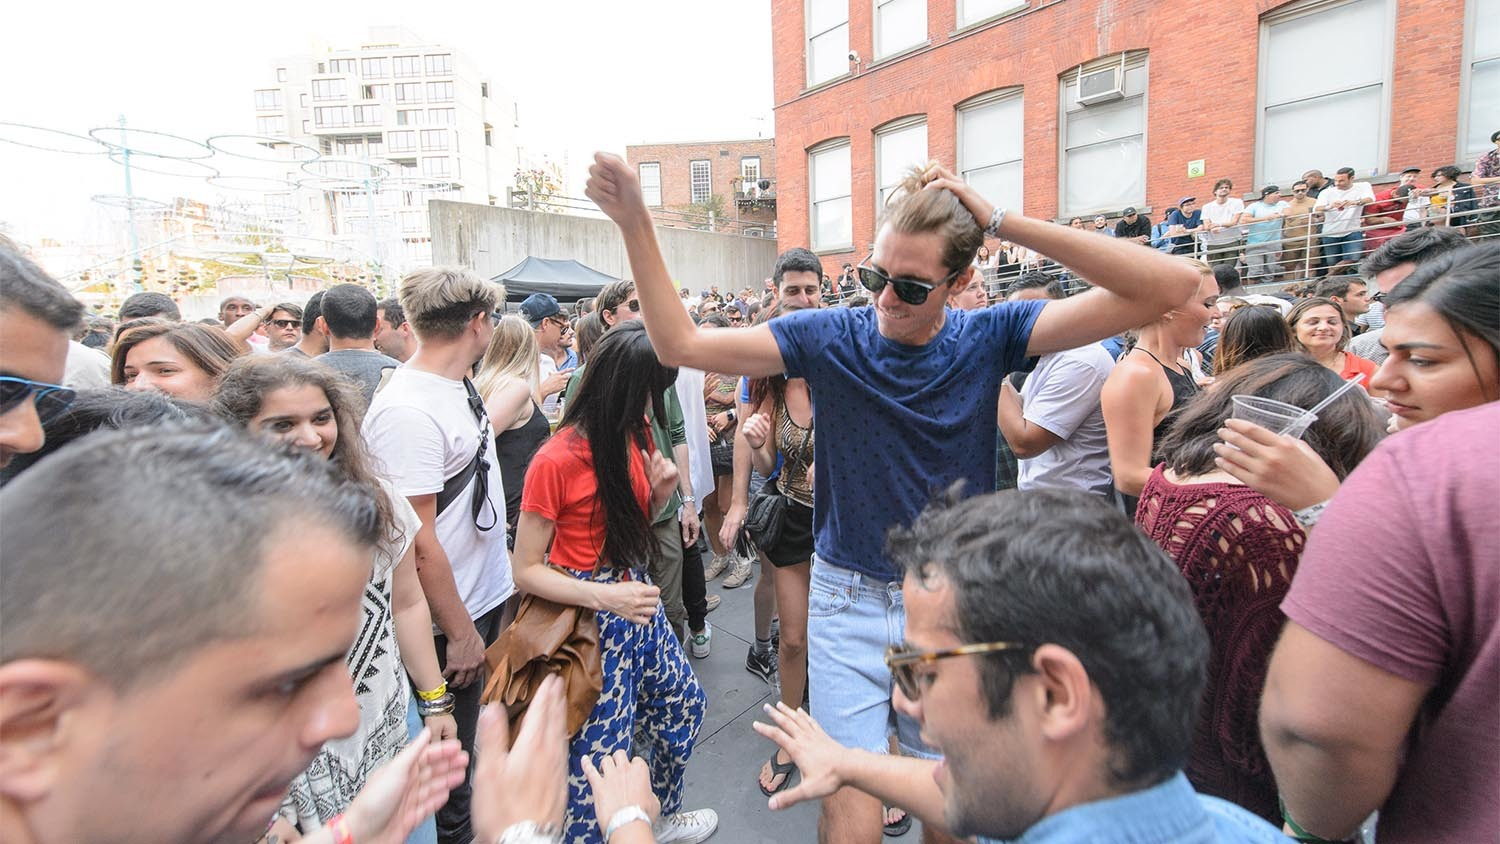 The full MoMA PS1 Warm Up 2019 schedule